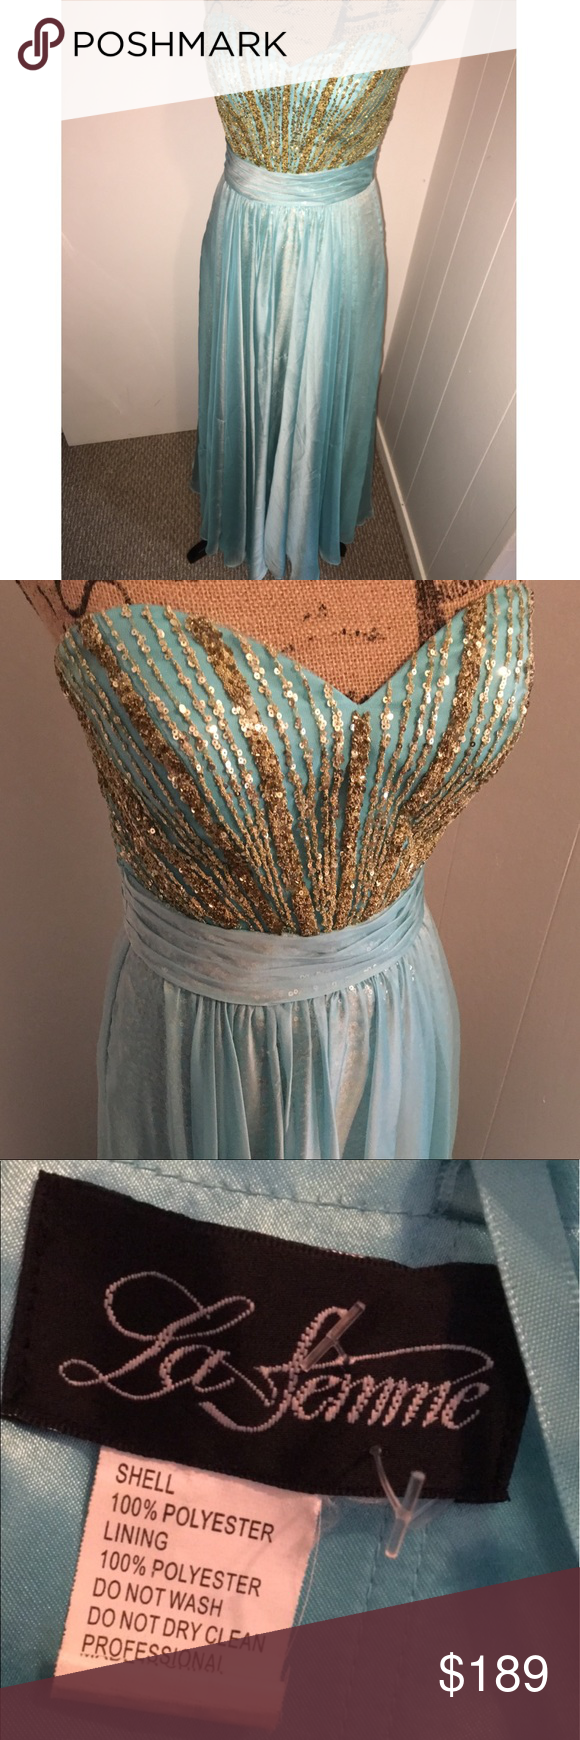 Princess Jasmine inspired dress This BEAUTIFUL dress was from the La Femme Disney collection as inspired by princess Jasmine! It is a light teal/blue color with a gold sequin layer underneath & gold jewels along the bust! La Femme Dresses Prom